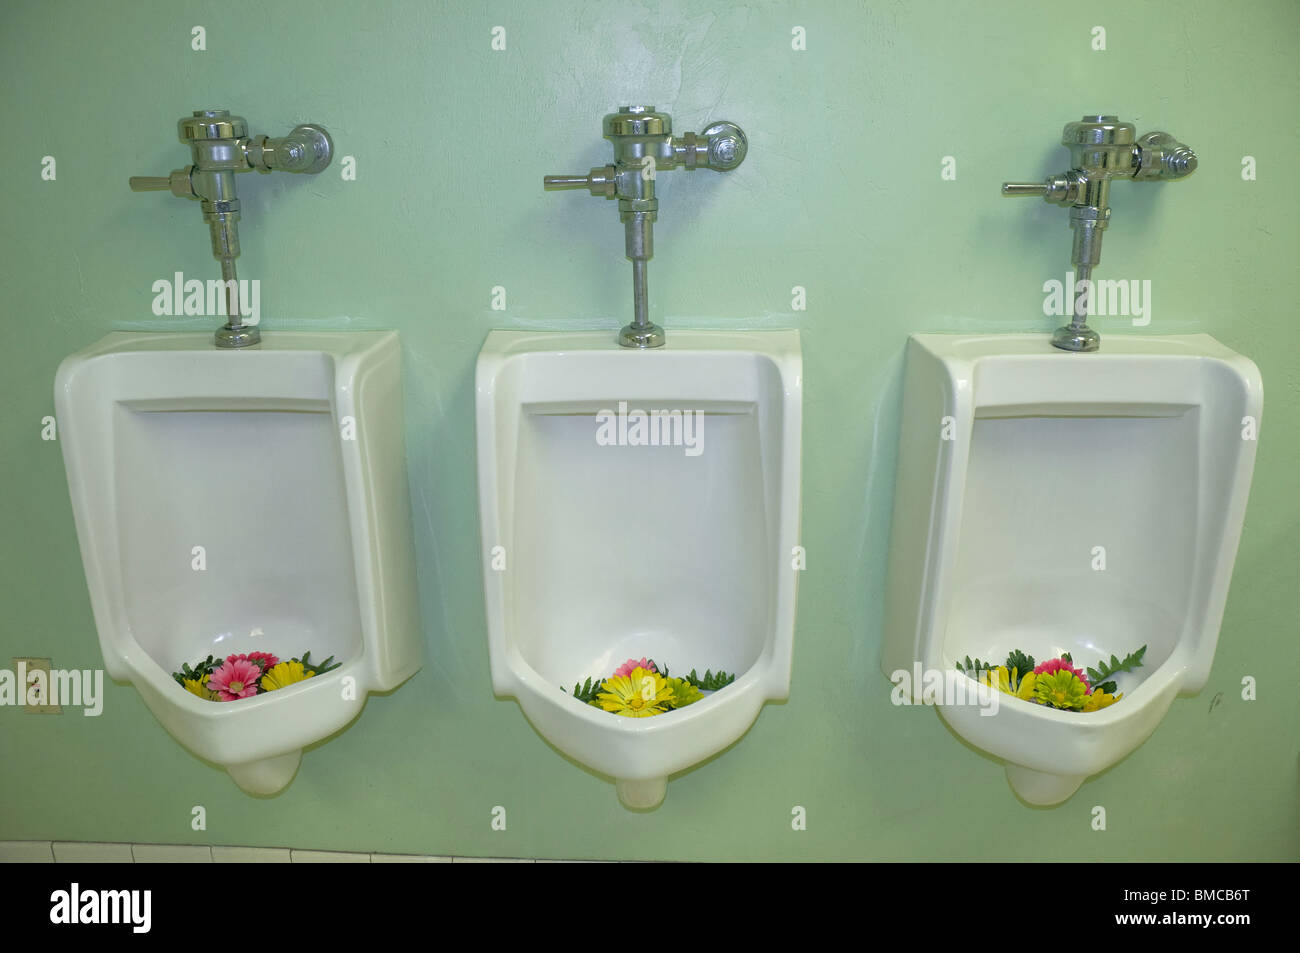 Women Take Over Menu0027s Bathroom And Install Flowers In Urinals